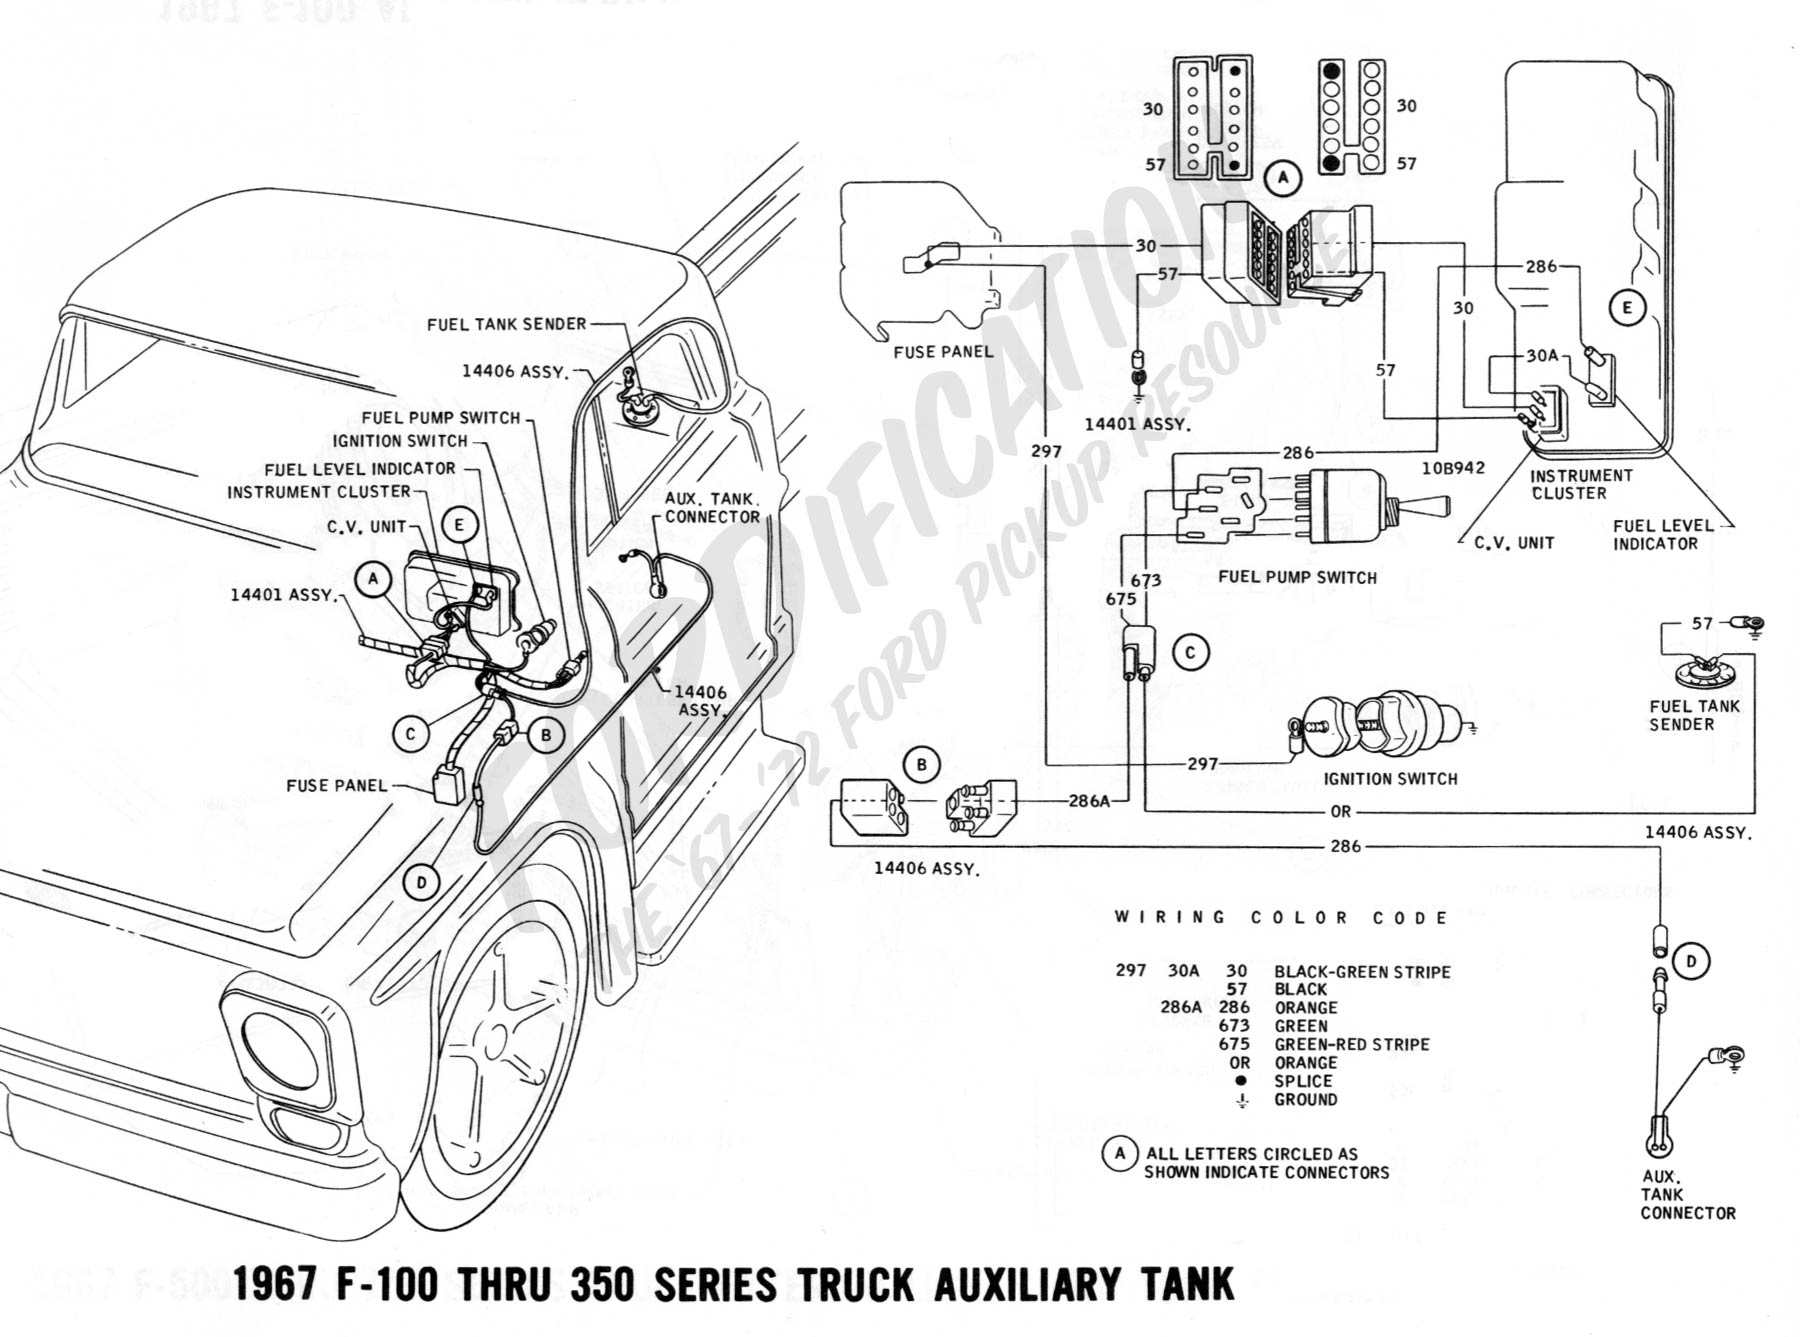 hight resolution of ford powerstroke faulty injector wiring harness ford truck technical drawings and schematics